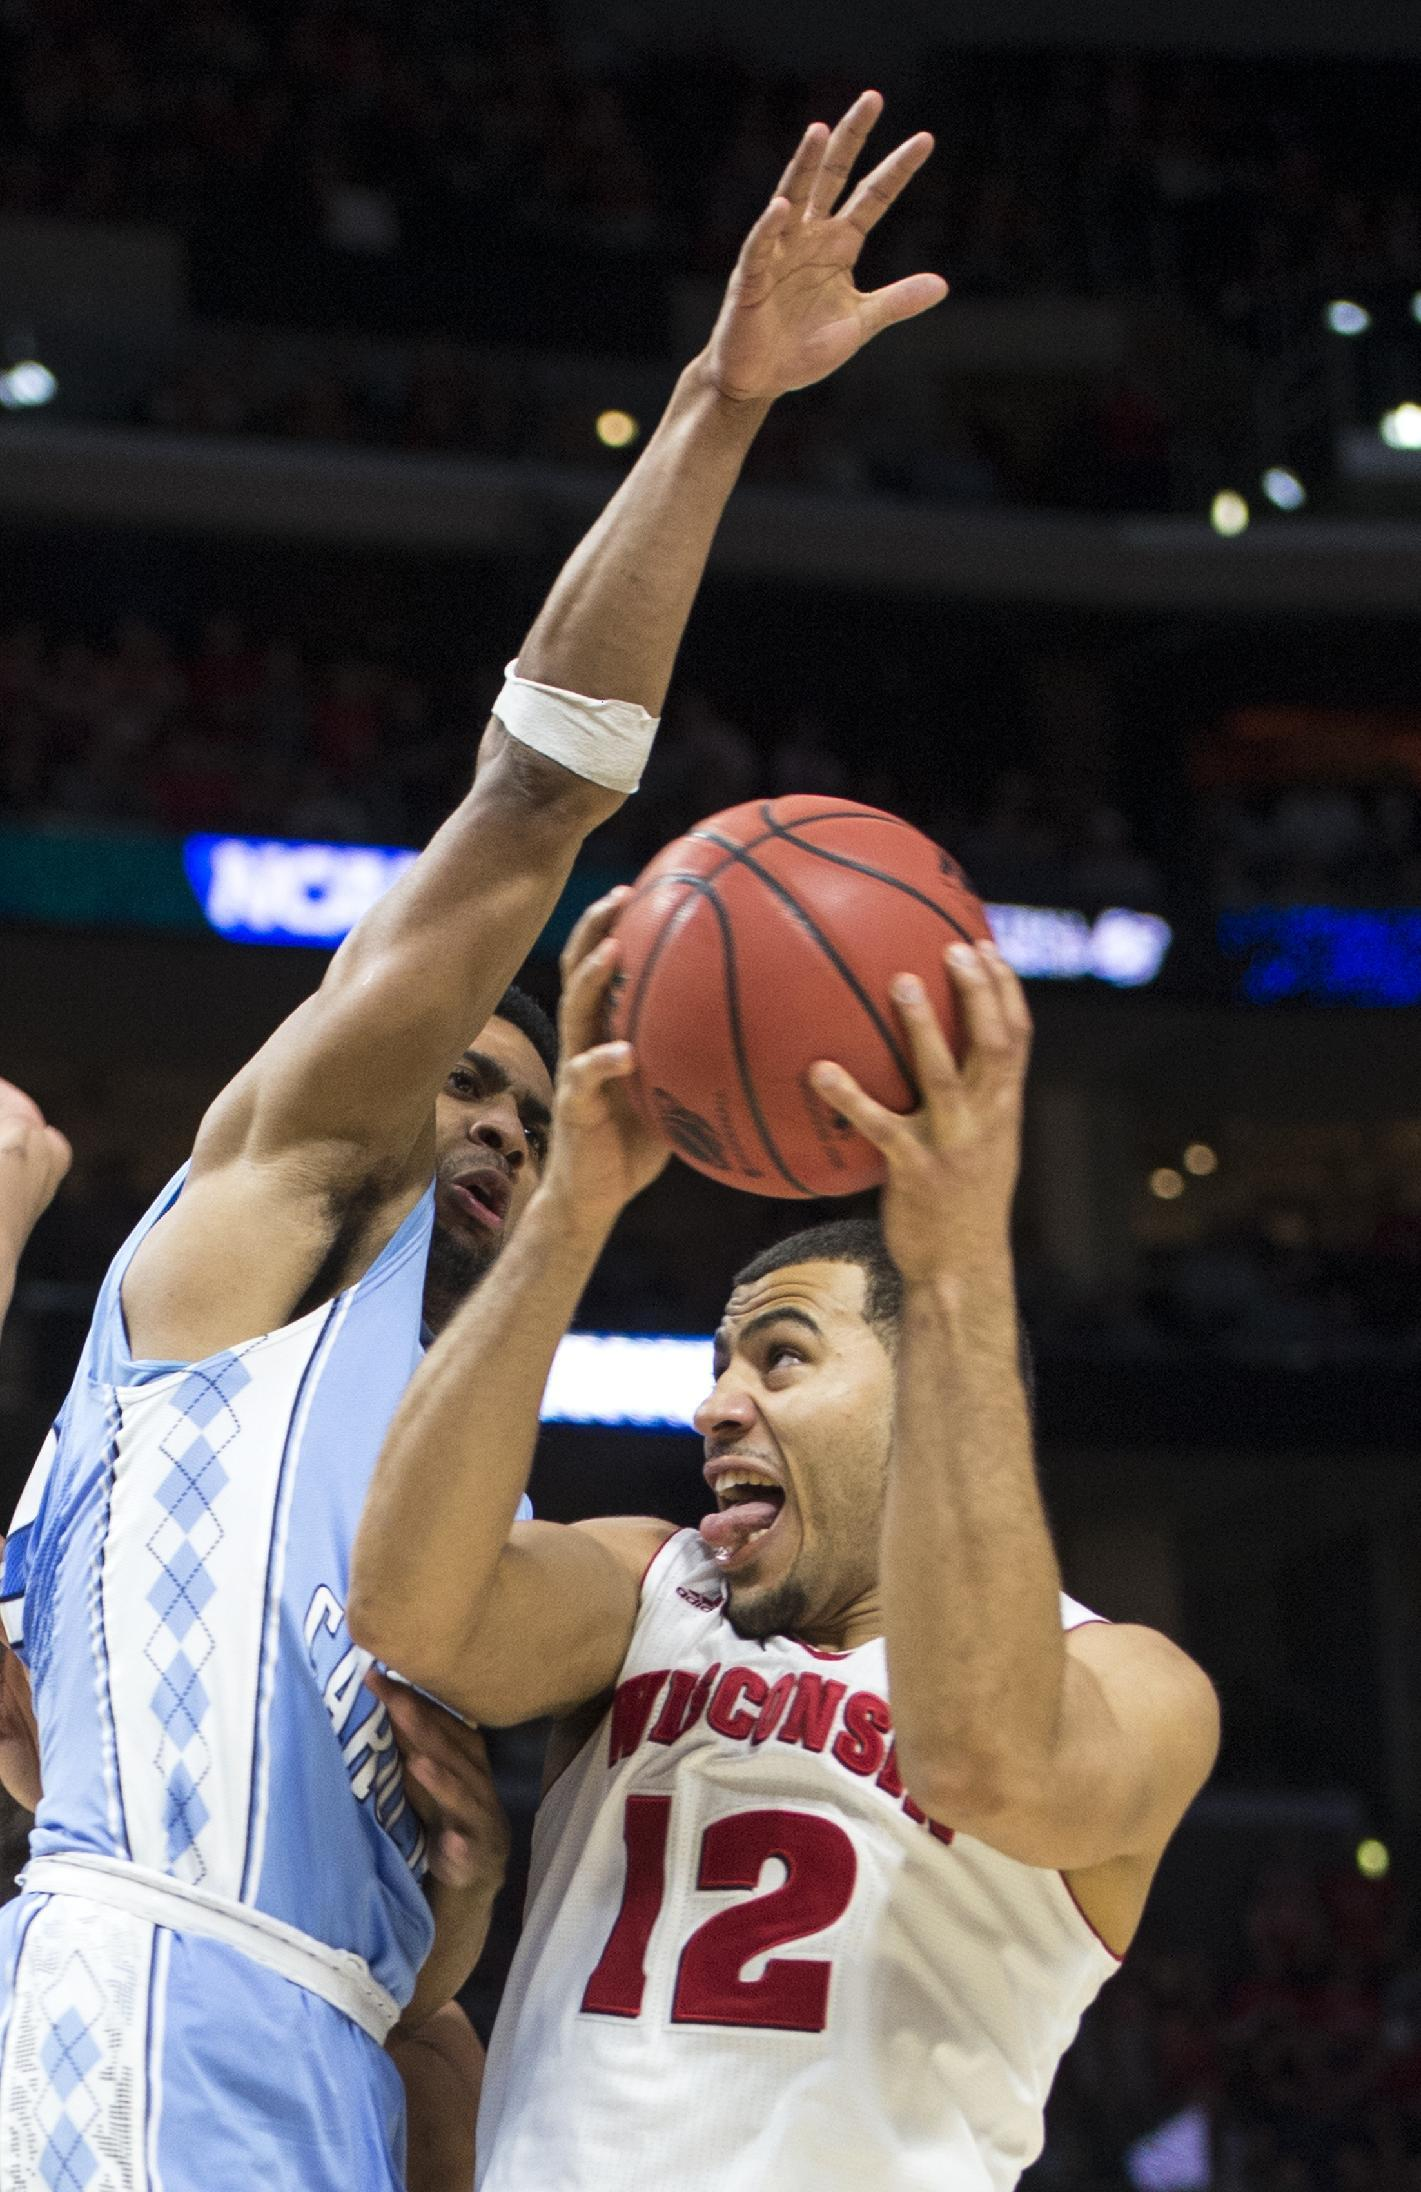 Traevon Jackson's journey ends at Final Four for Wisconsin